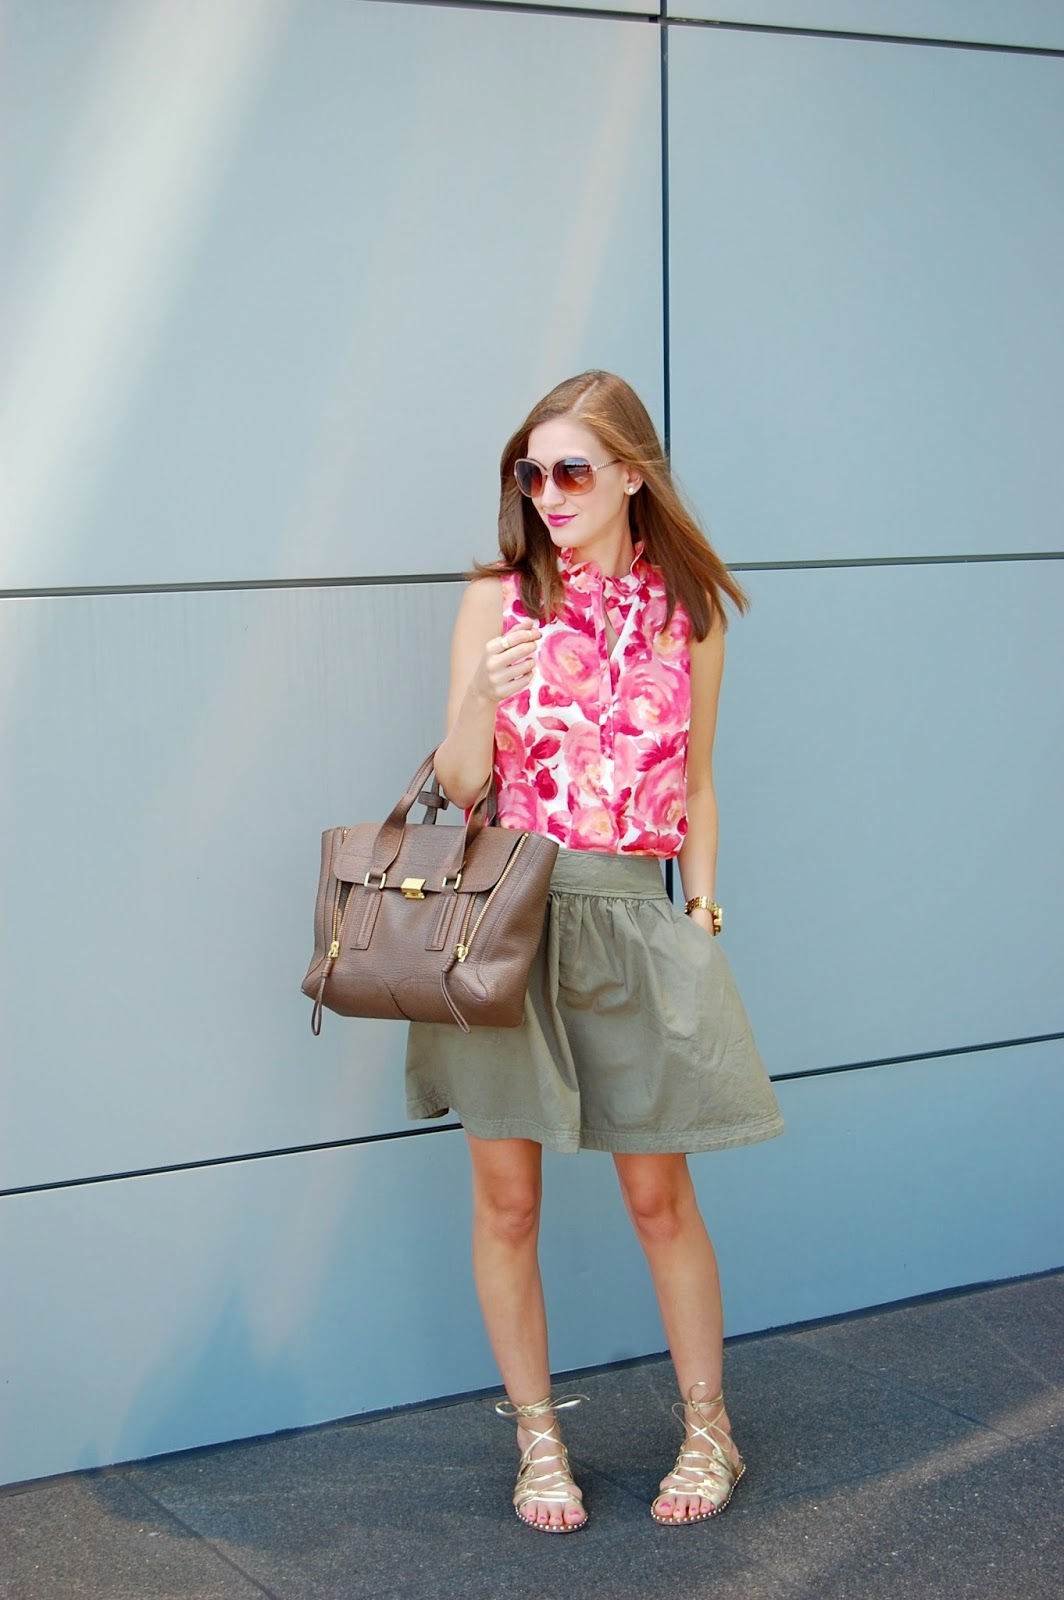 Wearing a casual day time outfit, Loft Floral blouse, Halogen A Line Flare Skirt, JCrew Studded Lace Up Gold Gladiator Sandals, Phillip Lim 3.1 Pashli Medium